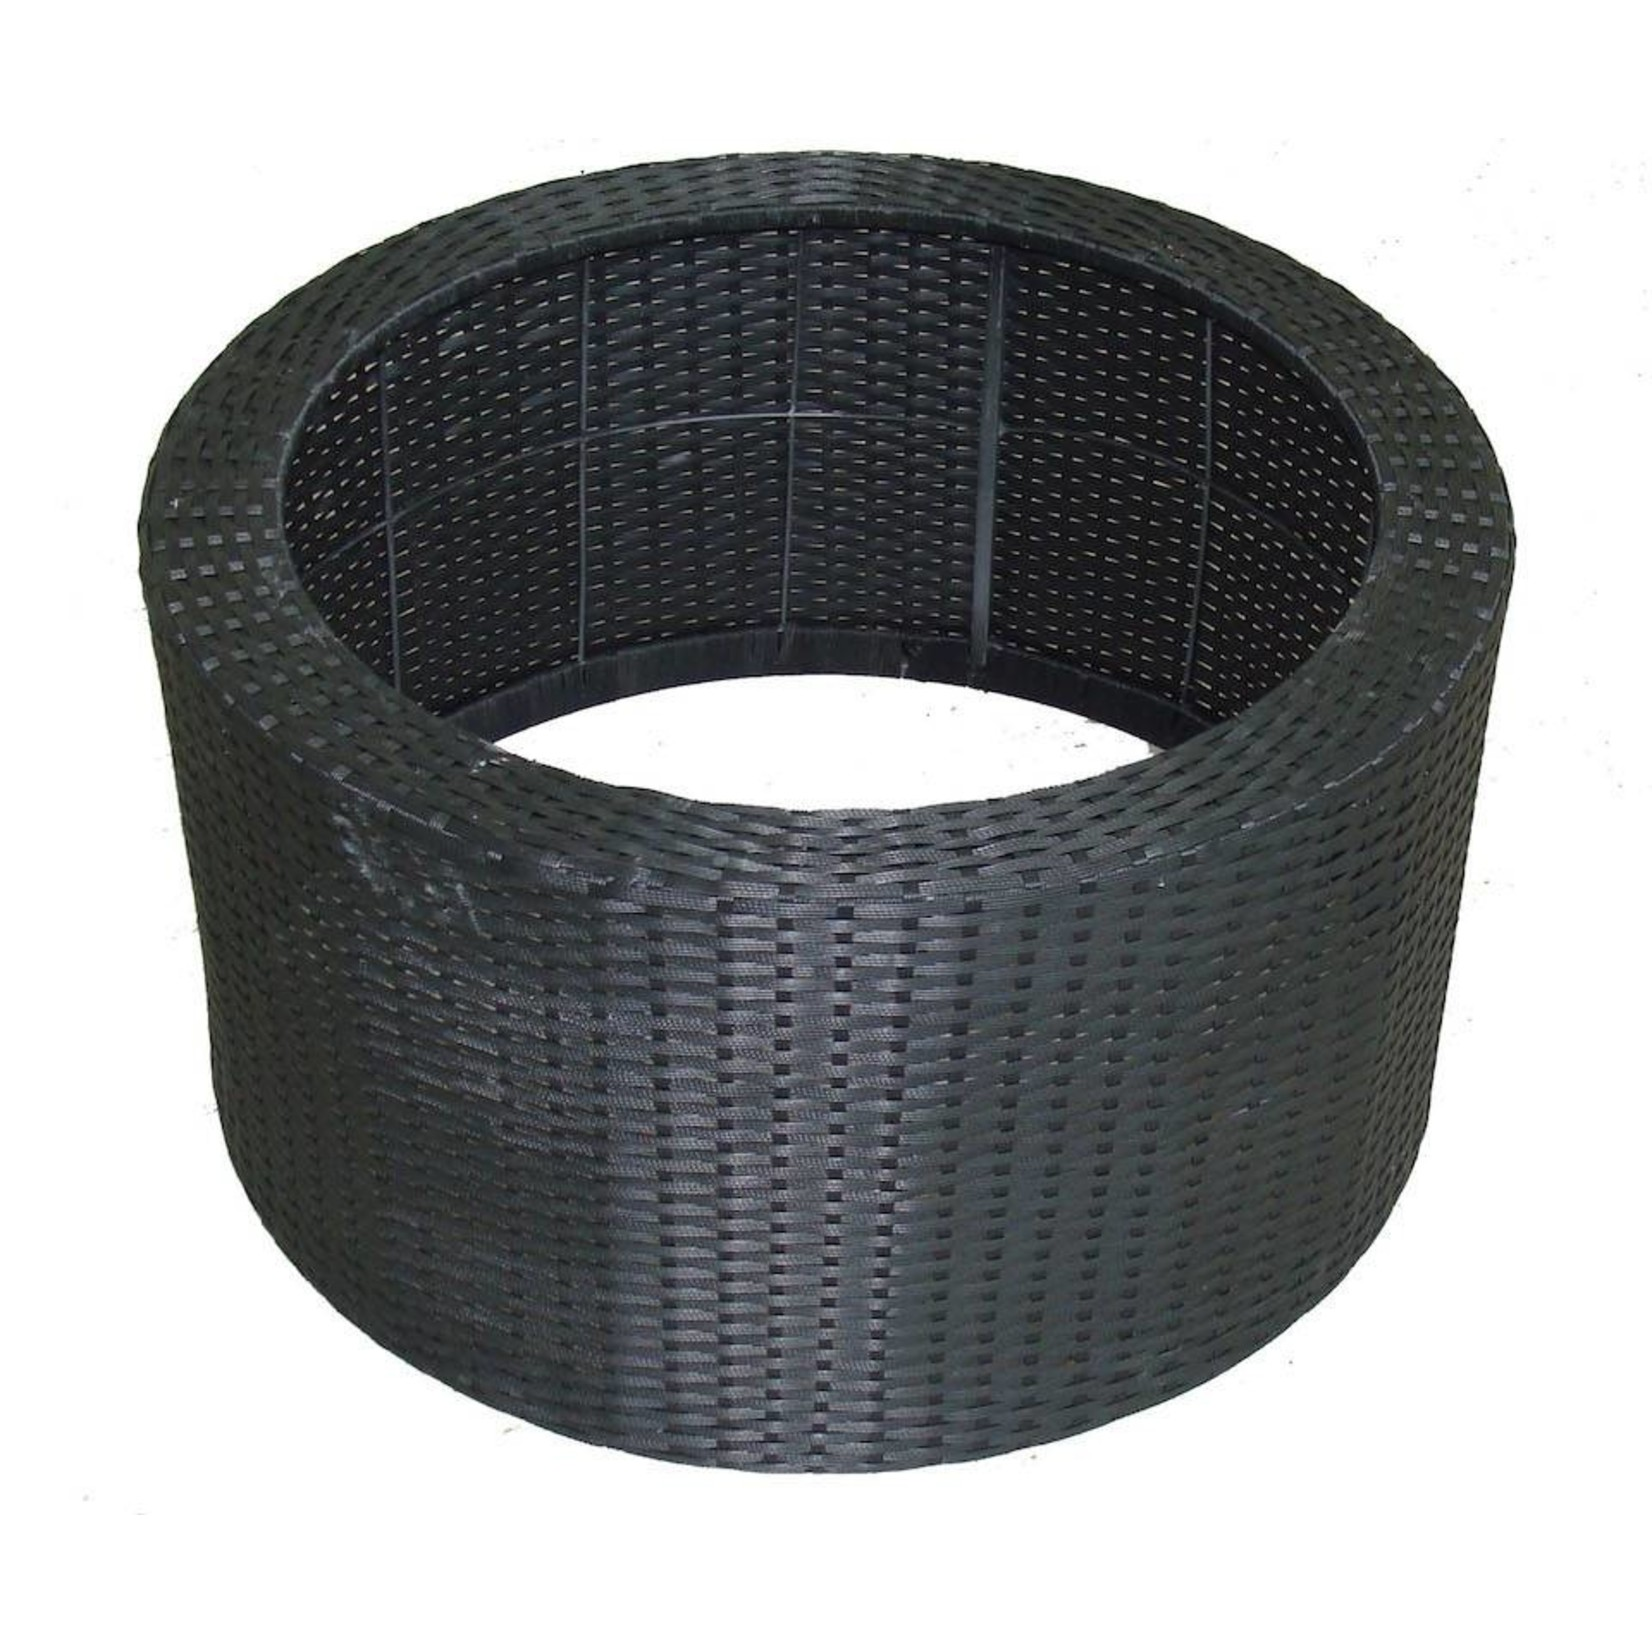 Heissner Fonteinset rond poly rotan